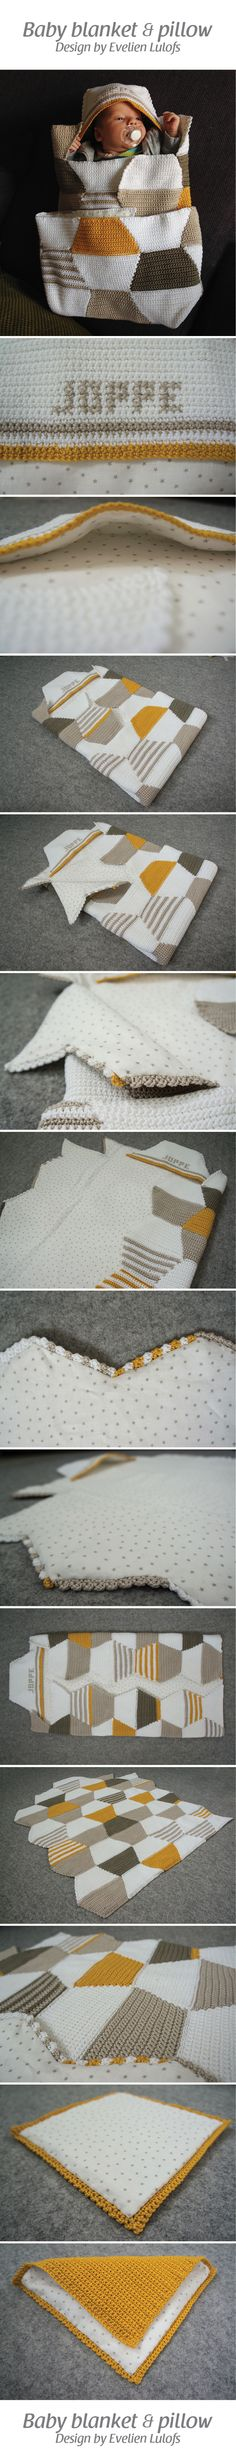 Crochet baby blanket and pillow, design and handmade by Evelien Lulofs